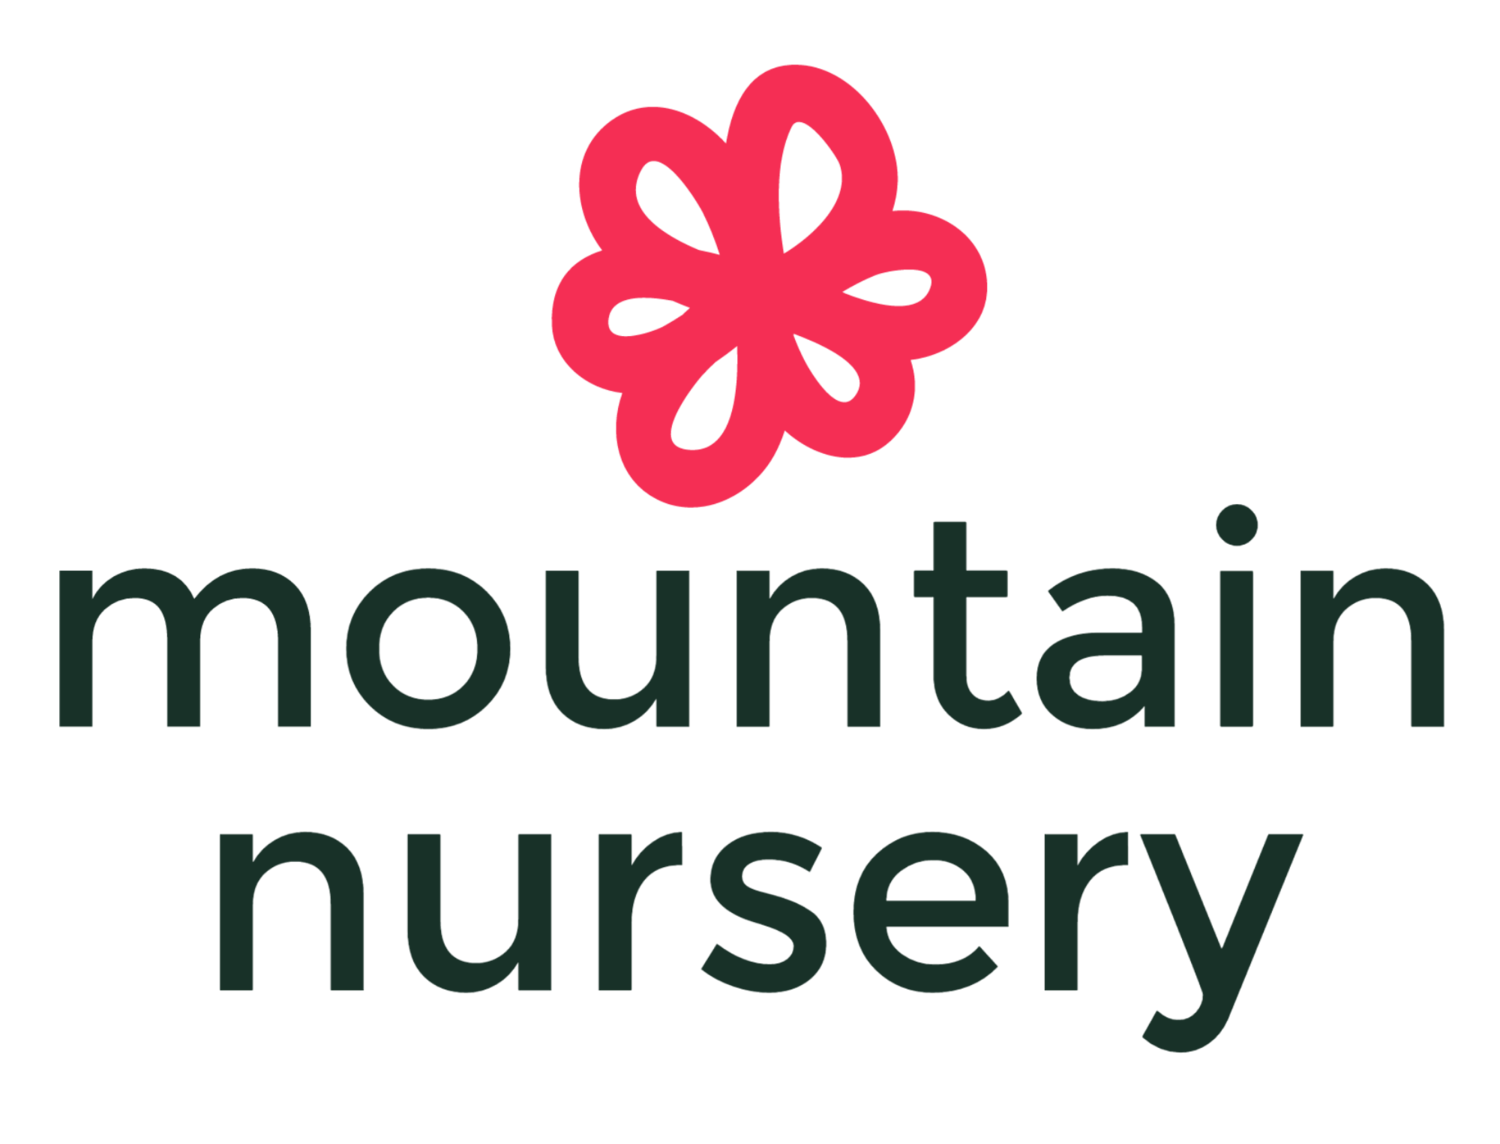 Mountain Nursery